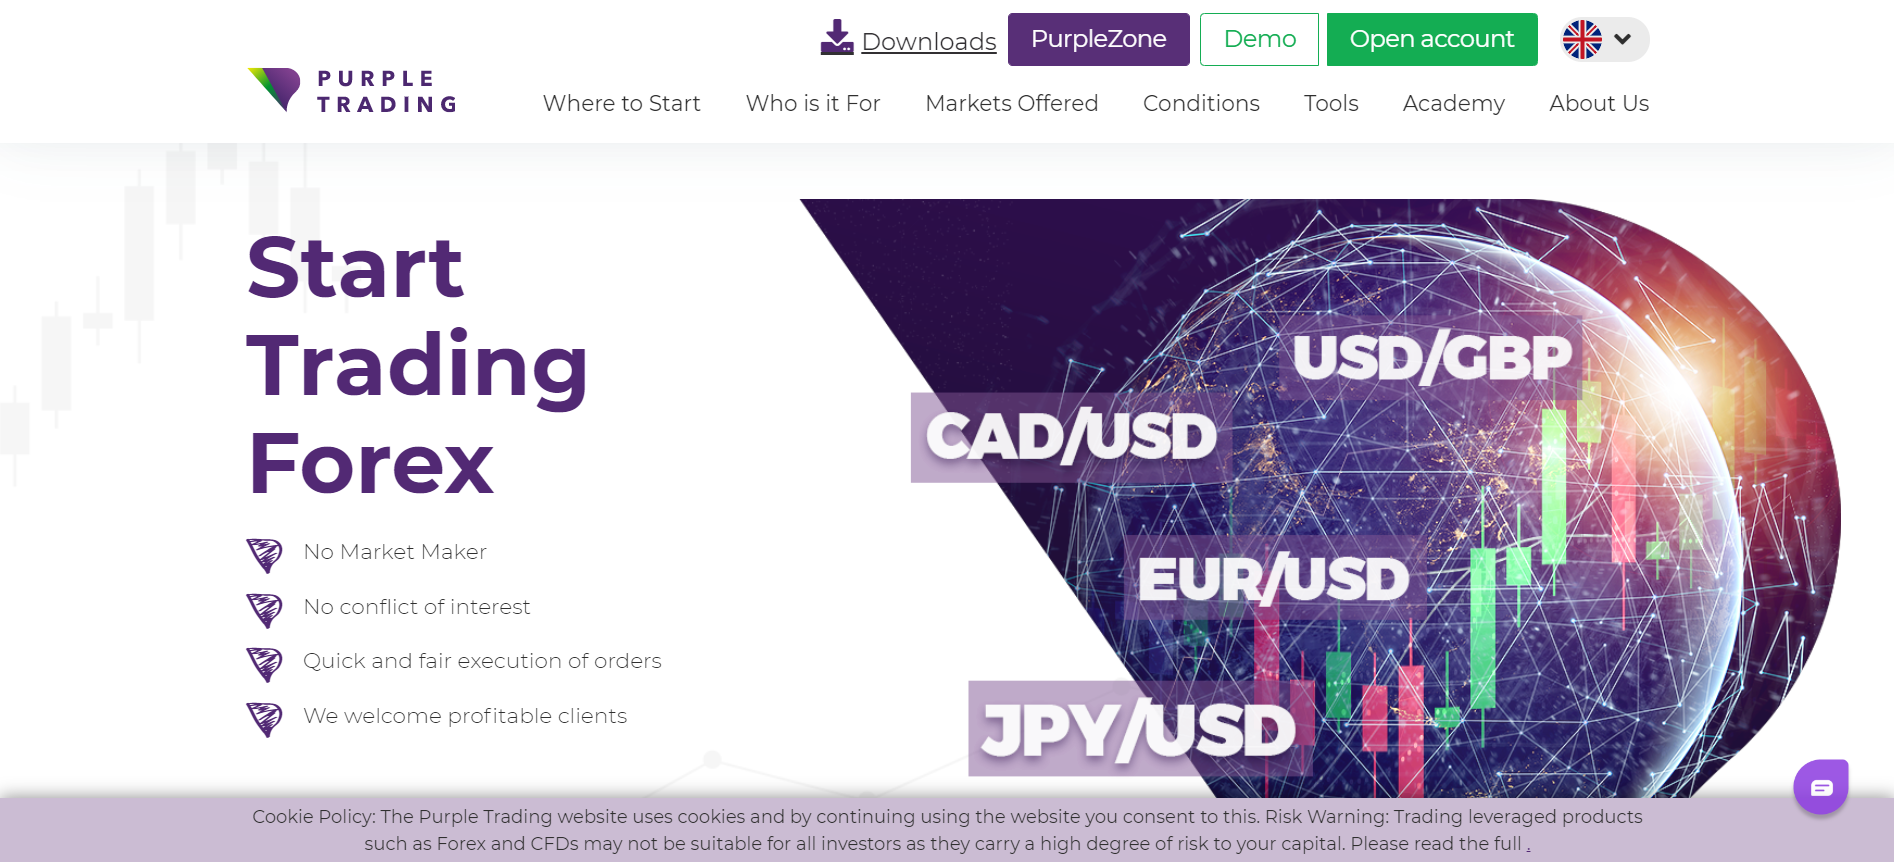 Purple Trading web